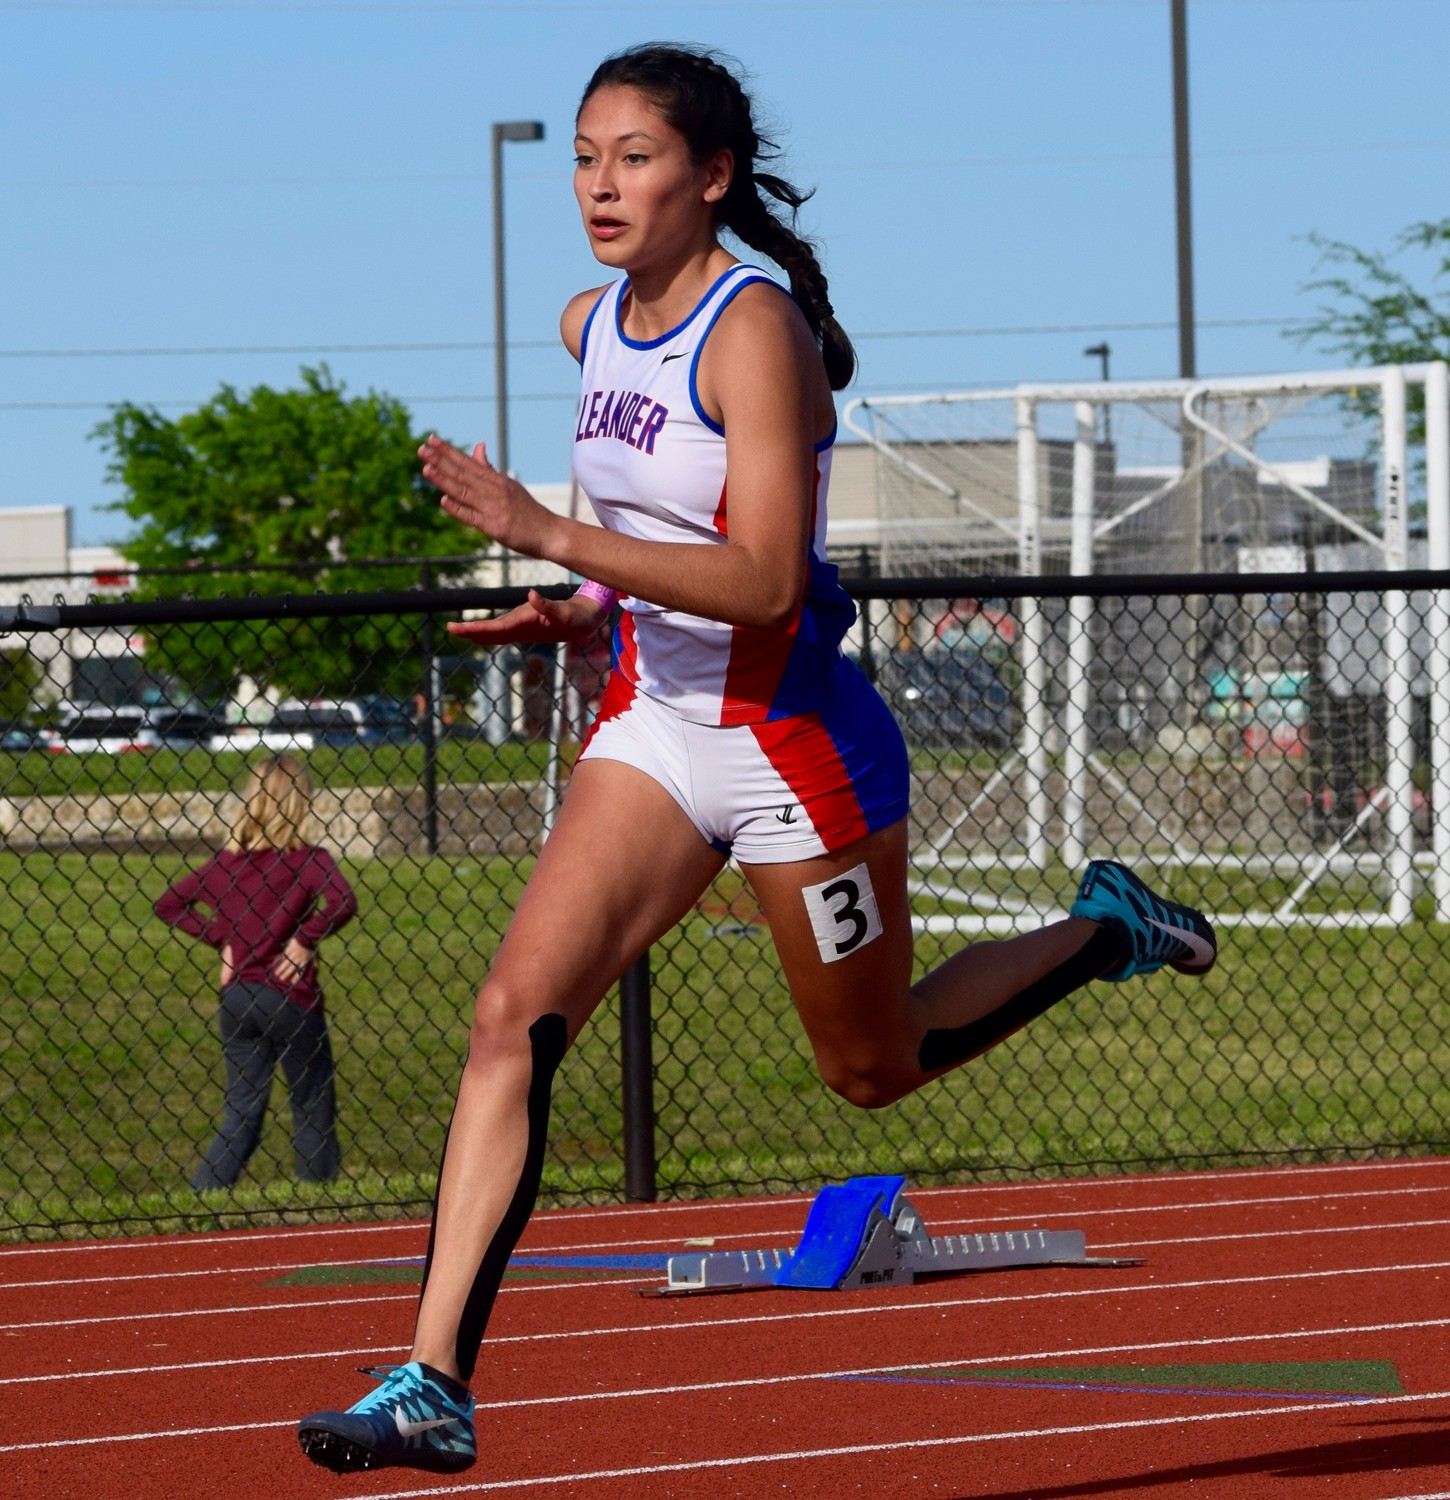 Leander sophomore Elizabeth Roca broke the school record in the 400-meter dash four times this season and is headed to her first state meet.